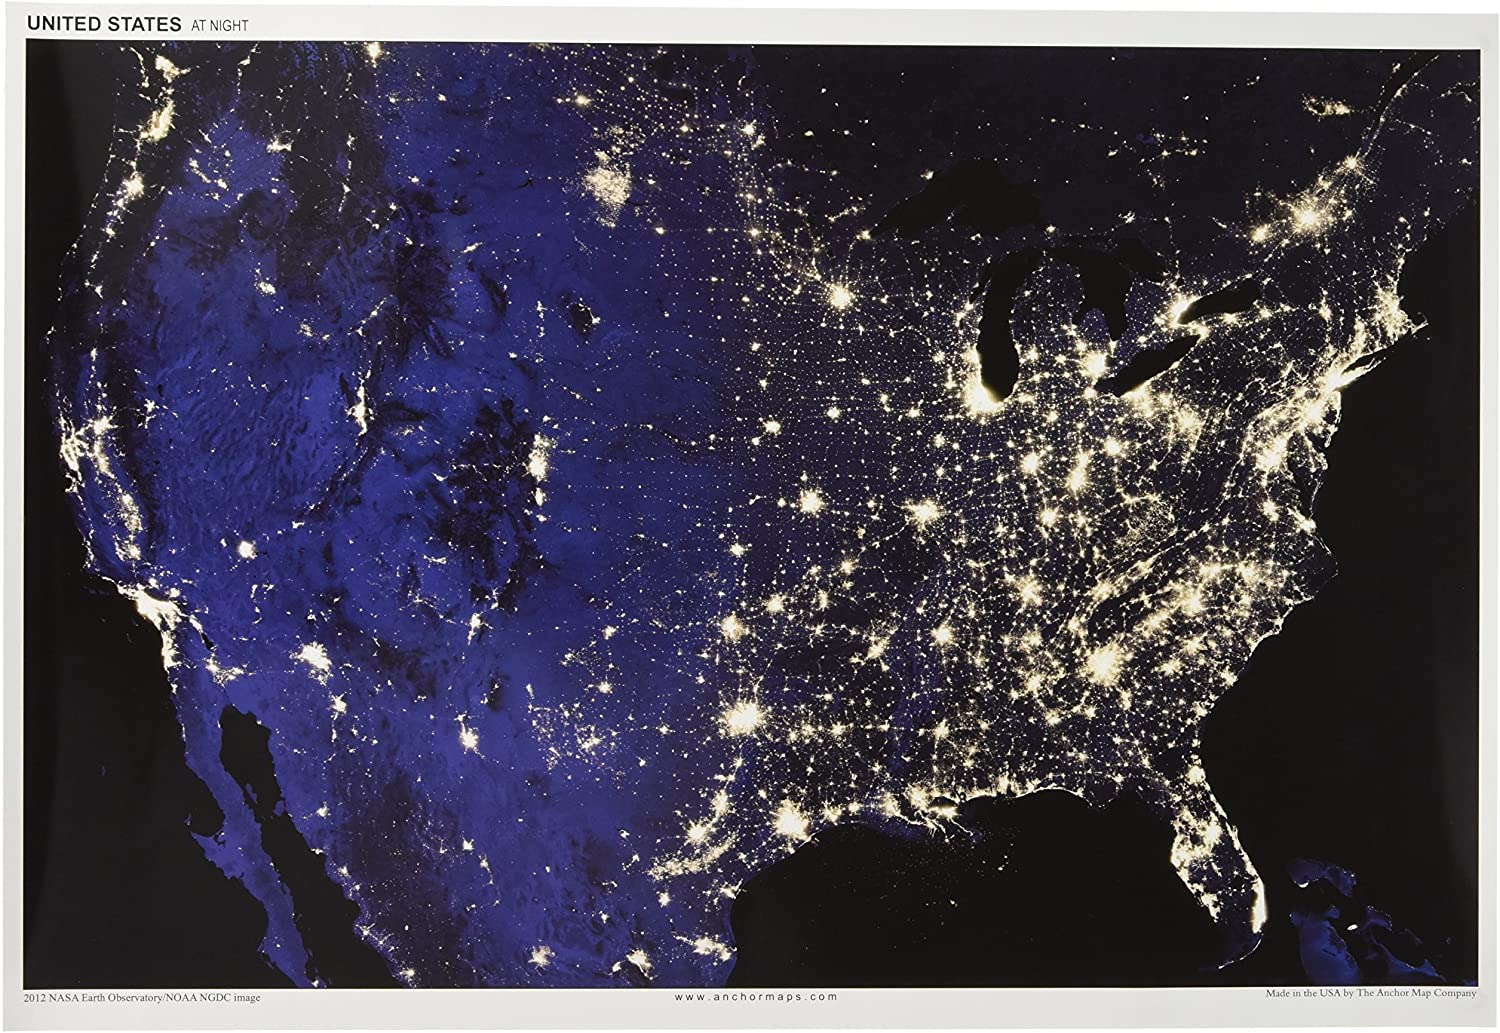 Us Night Light Map Amazon.com: 13x19 Anchor Maps United States at Night Poster